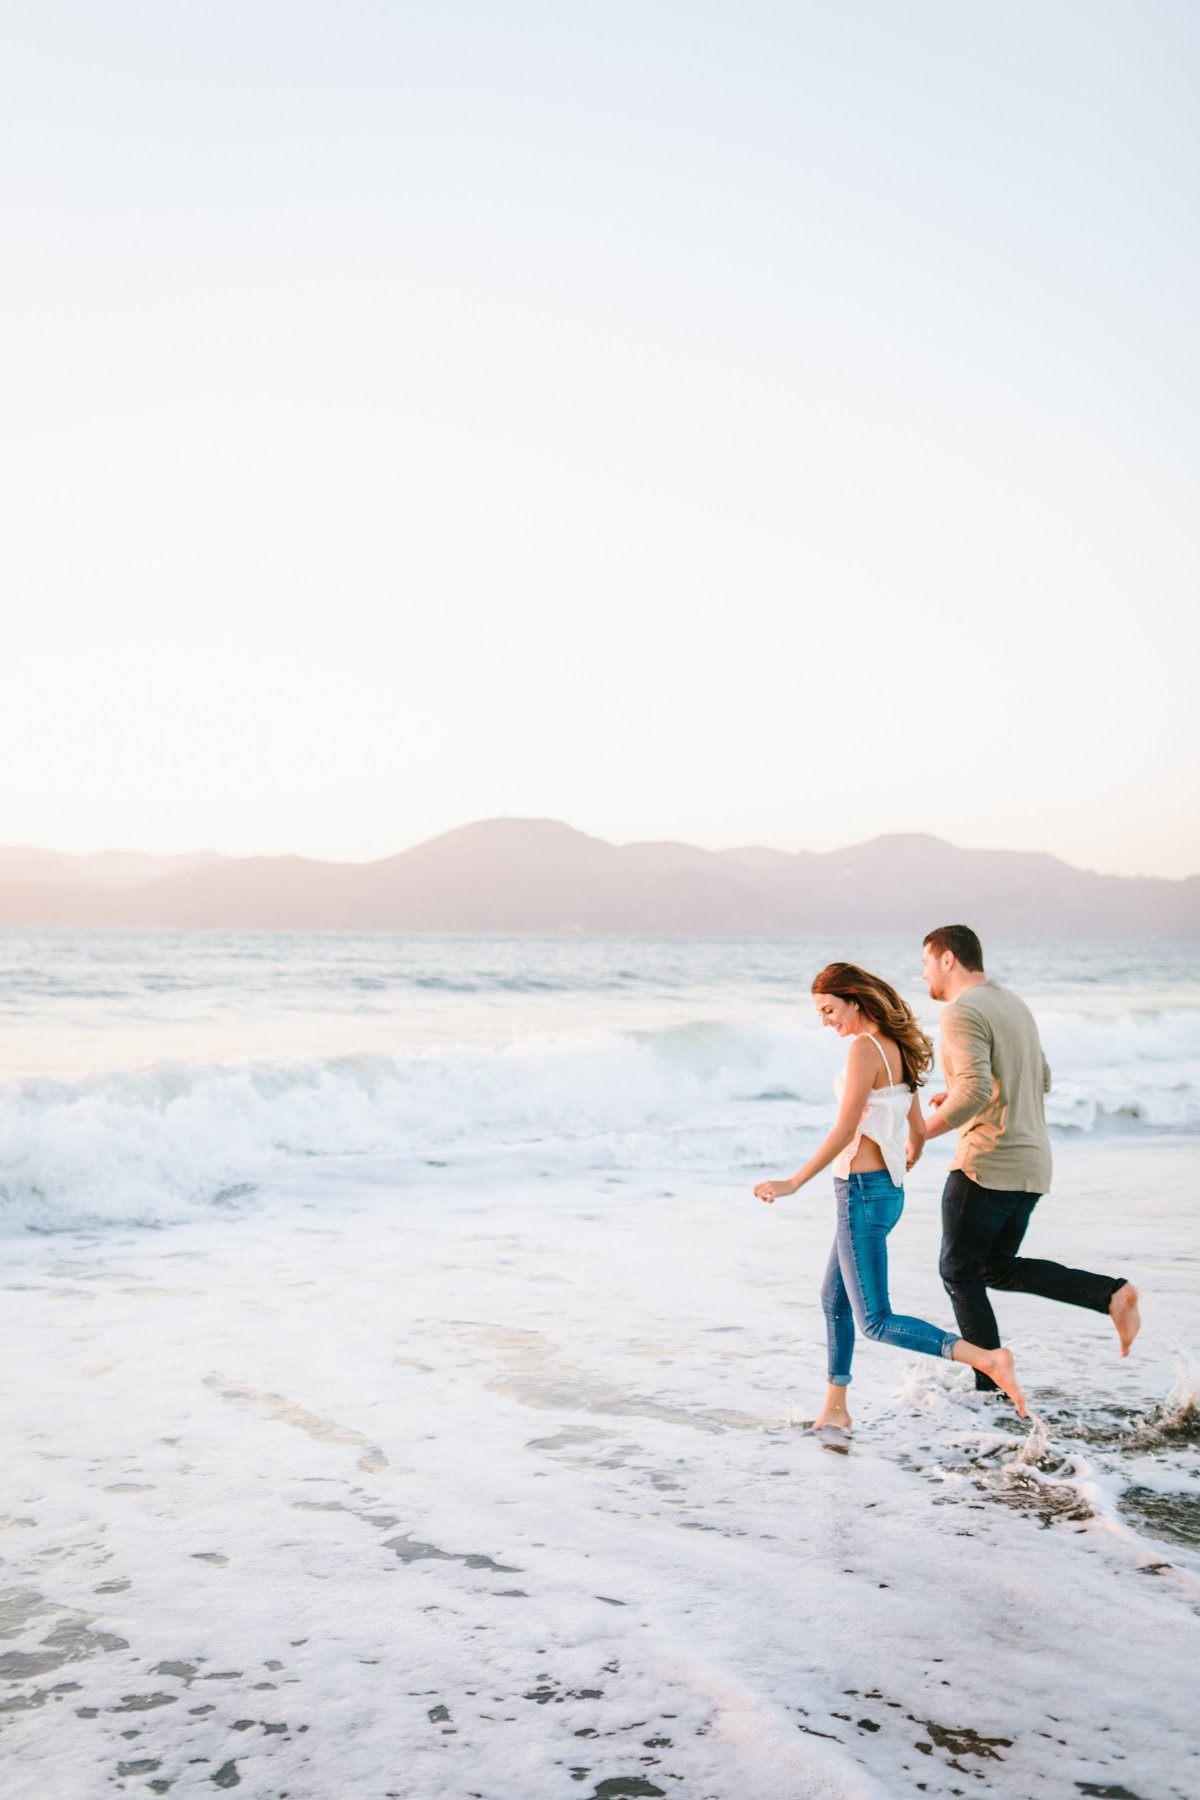 Best California Engagement Photographer-Jodee Debes Photography-63